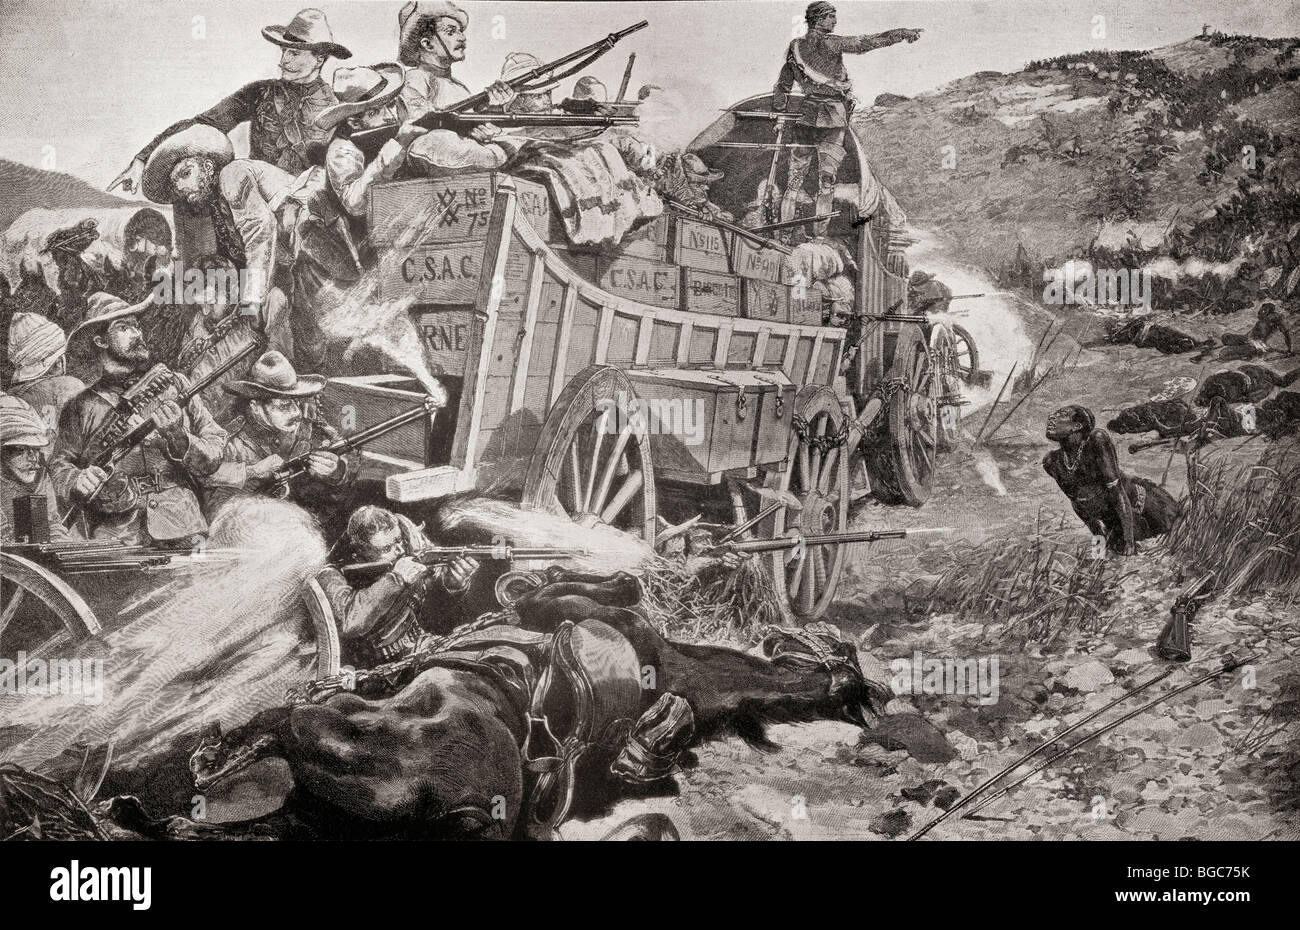 Defending a laager during the Matabele Wars. - Stock Image